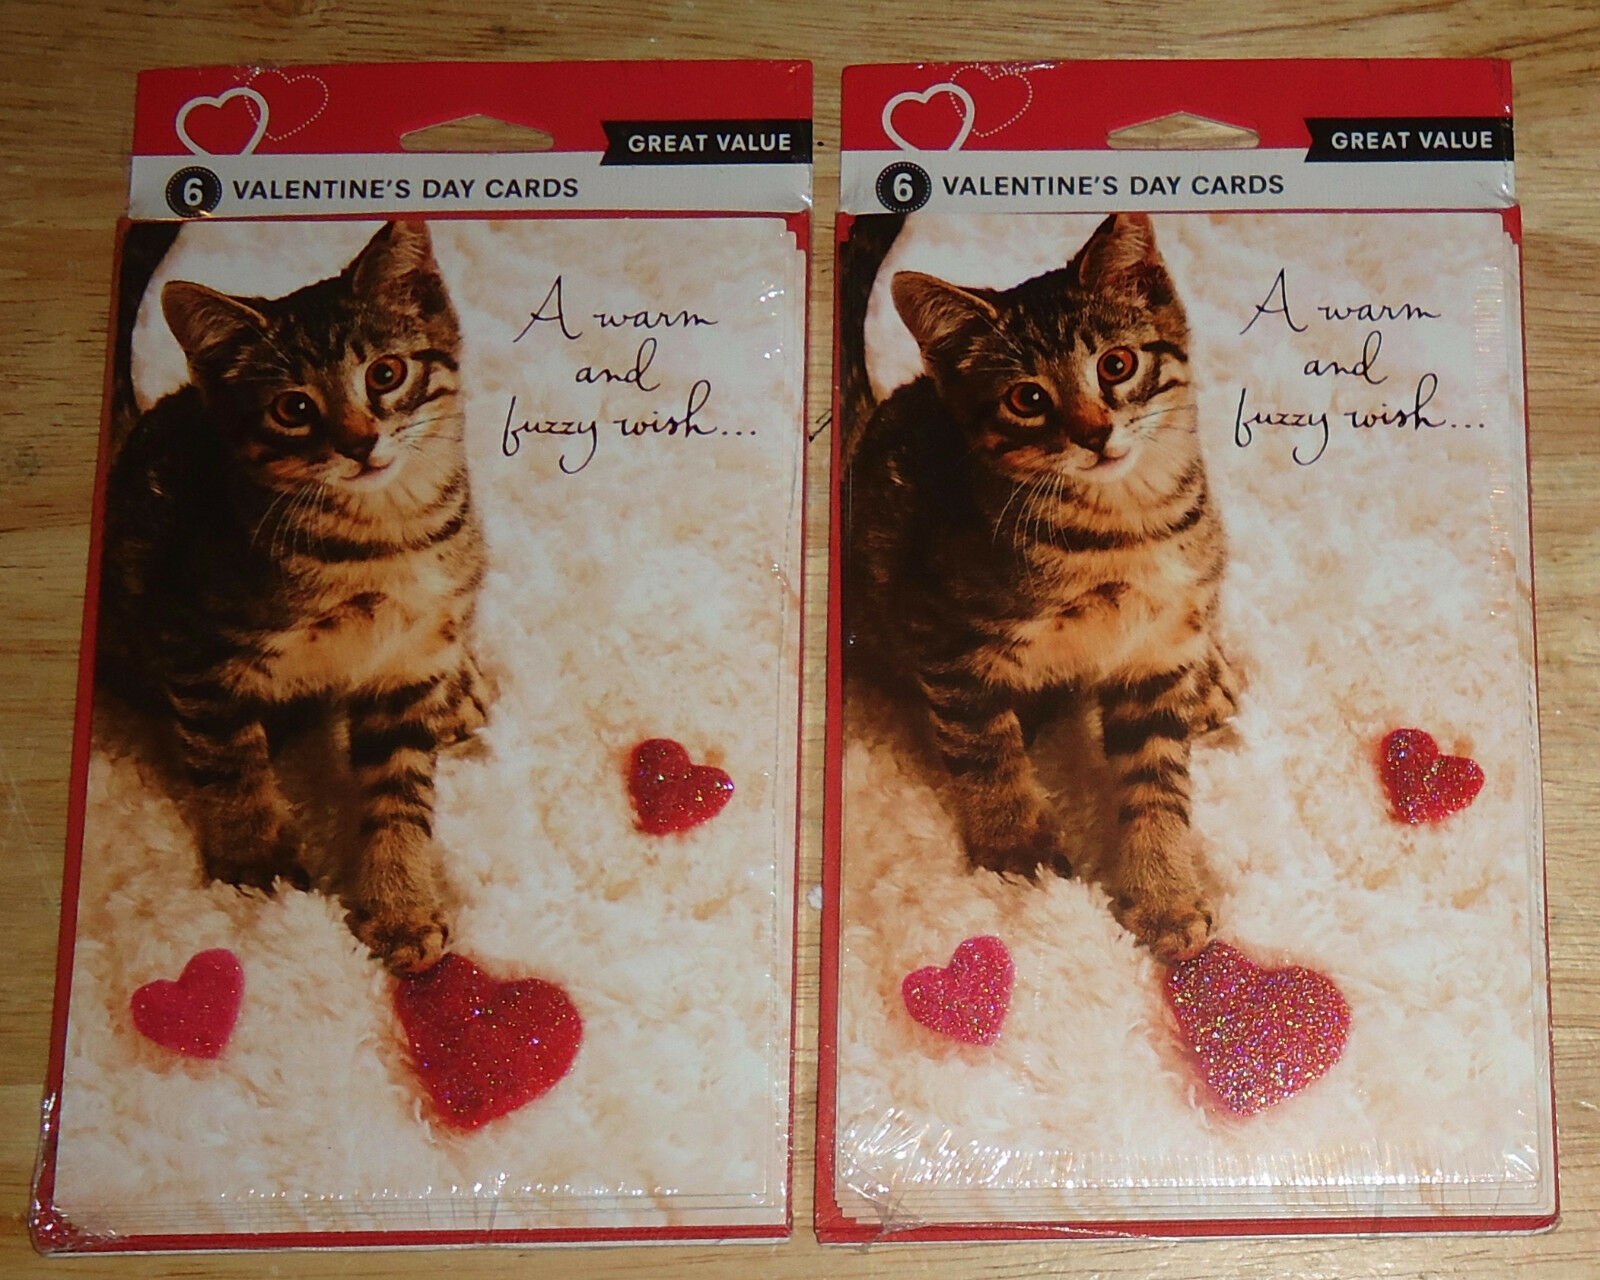 12 American Greetings Valentinevalentines Card Catcats A Warm And